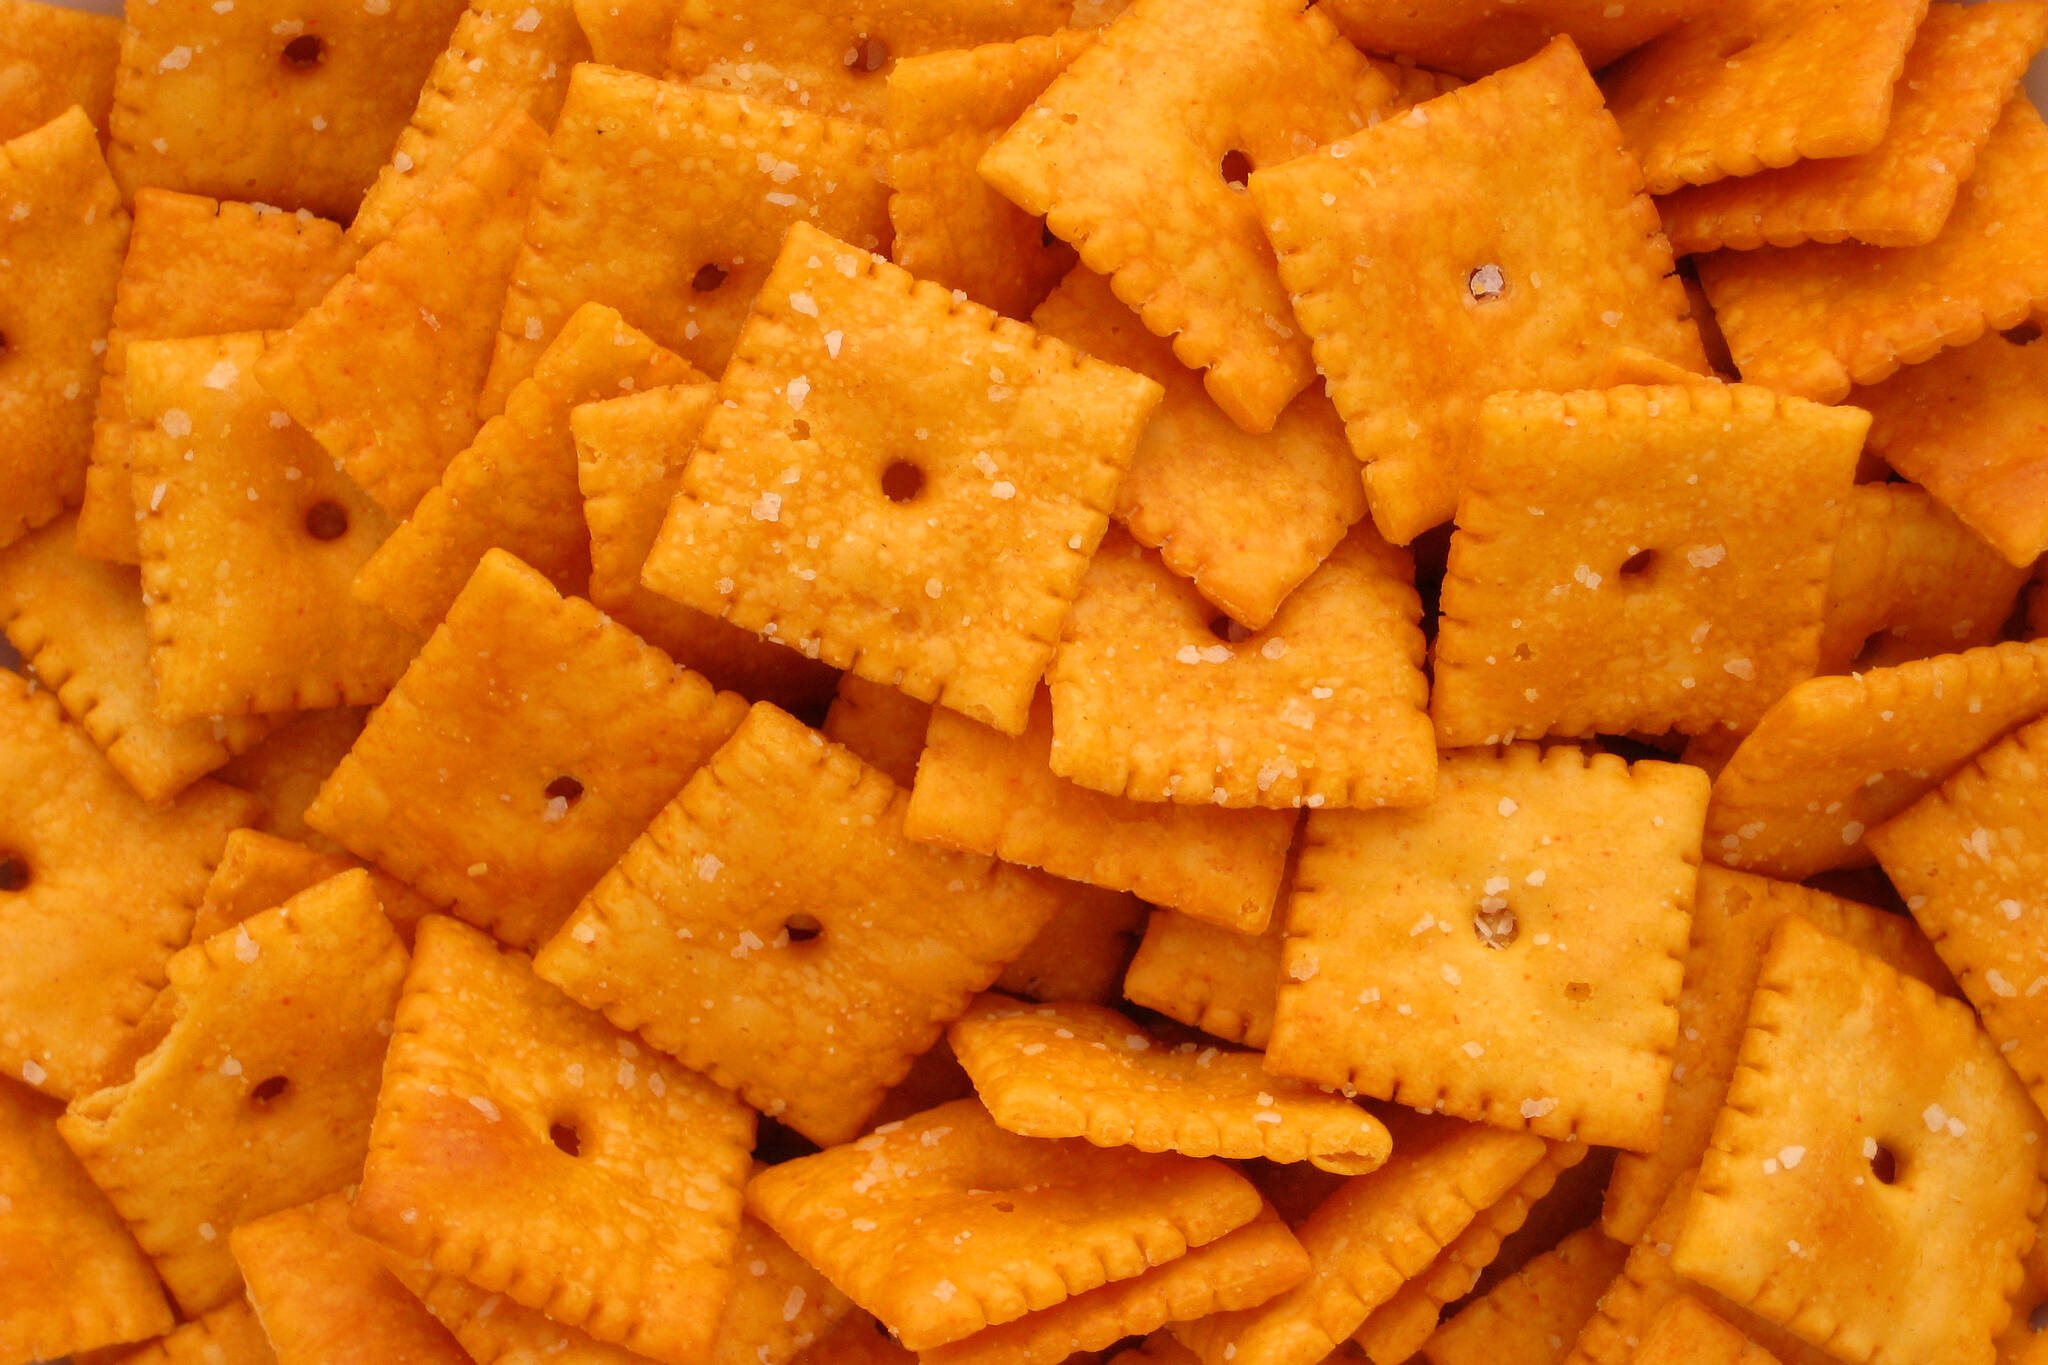 cheez-it canada